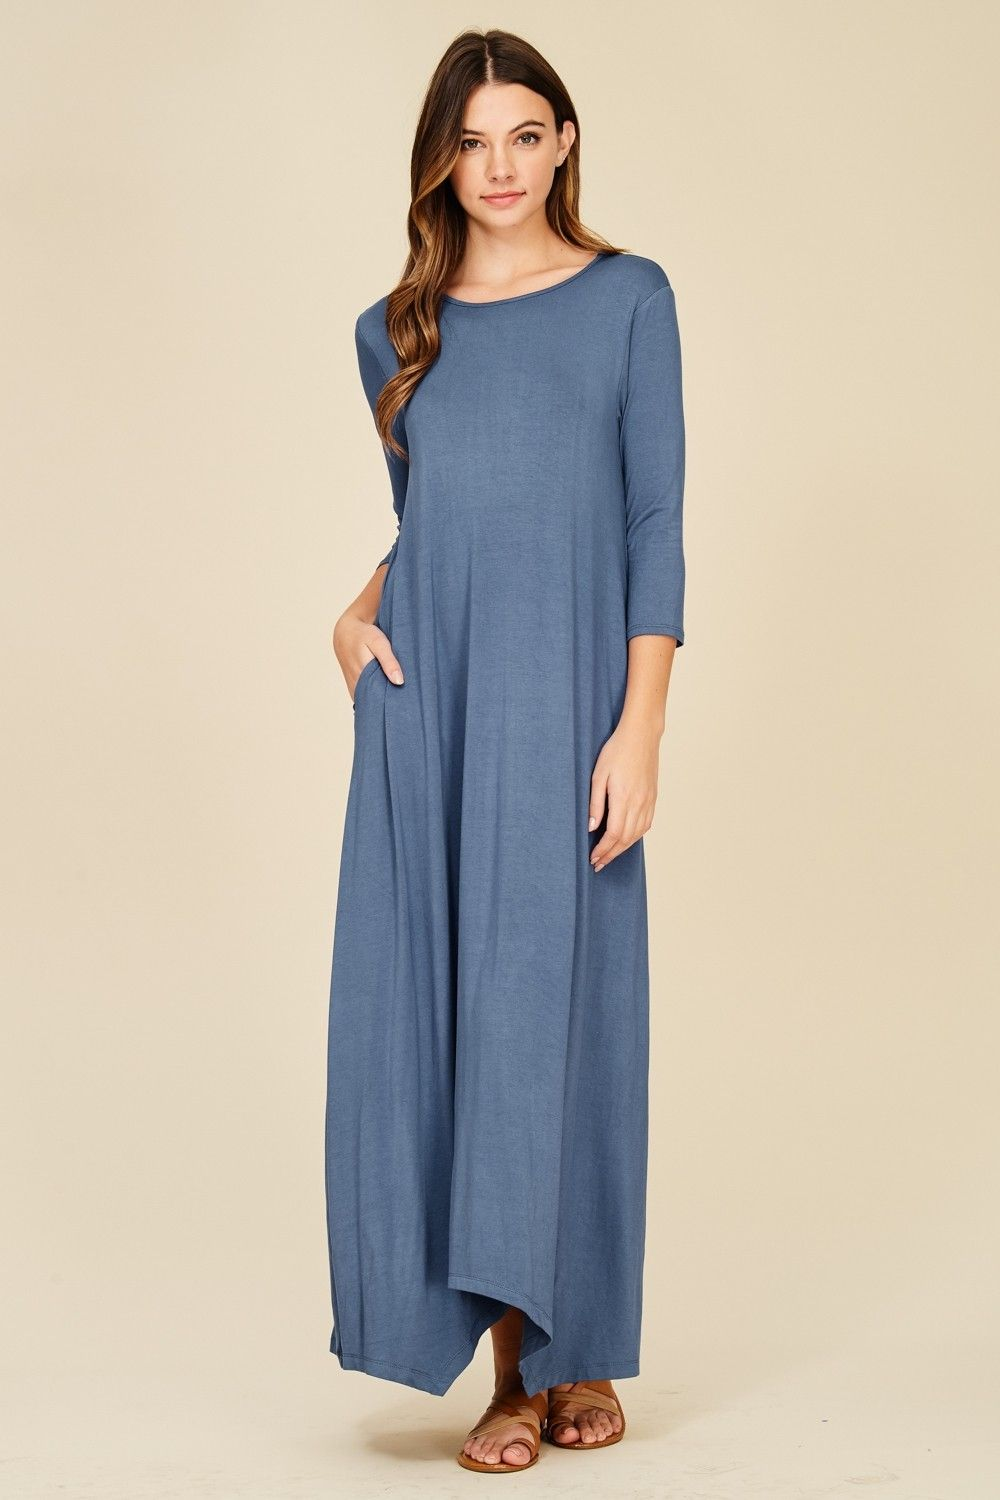 04c86729f1 3 4 Sleeve Maxi Dress Style  D5212 Knit dress featuring solid